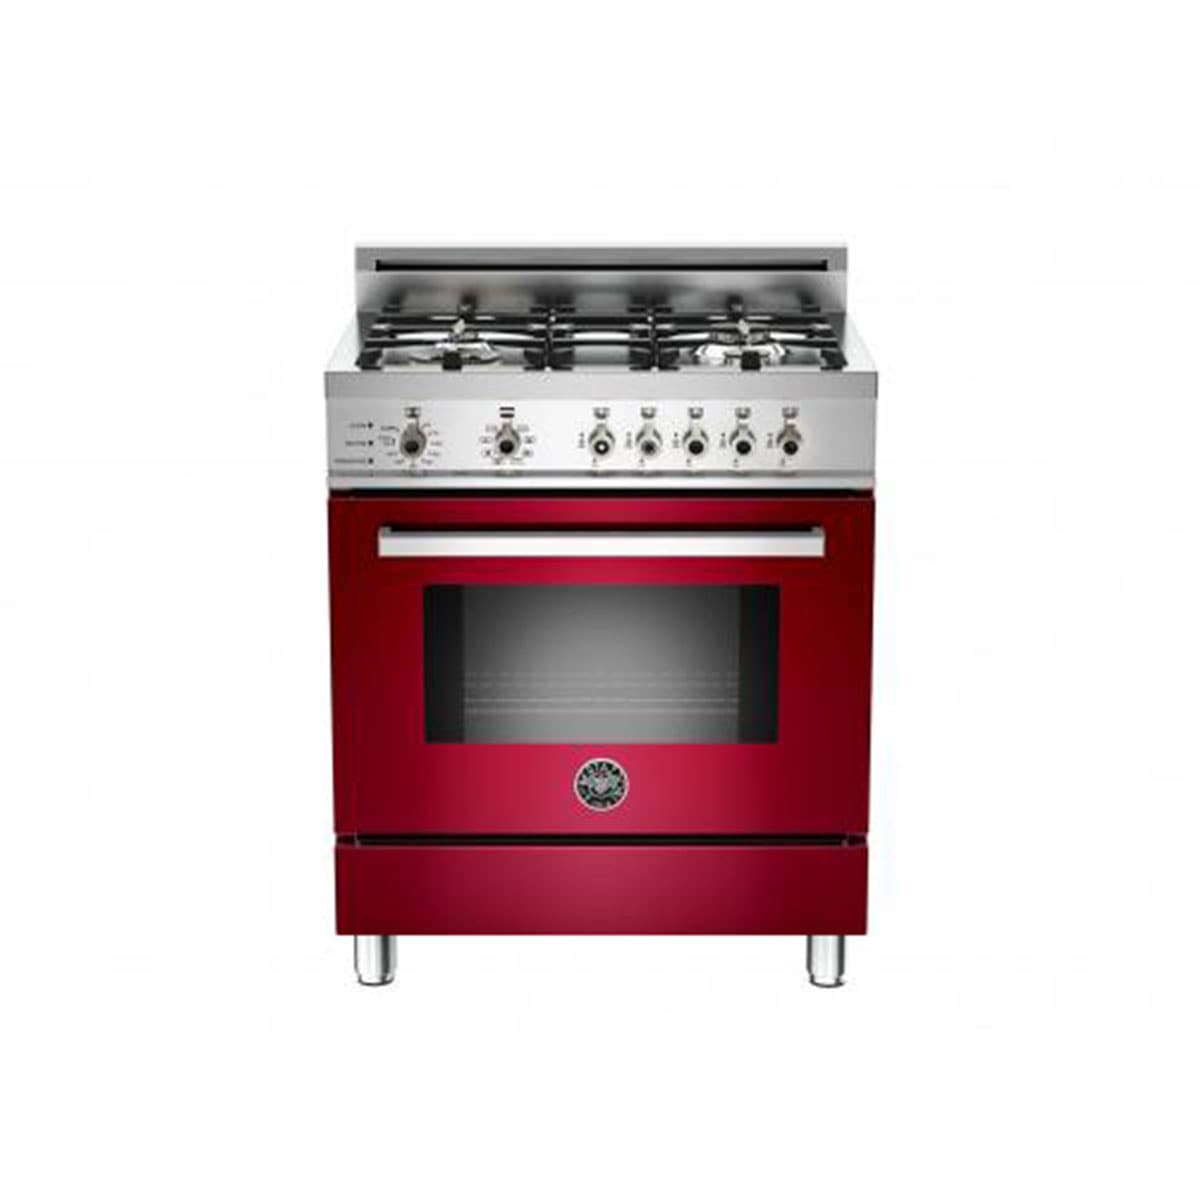 Beyond Smeg: 10 Colorful Appliances to Brighten Up Your Kitchen: gallery image 6